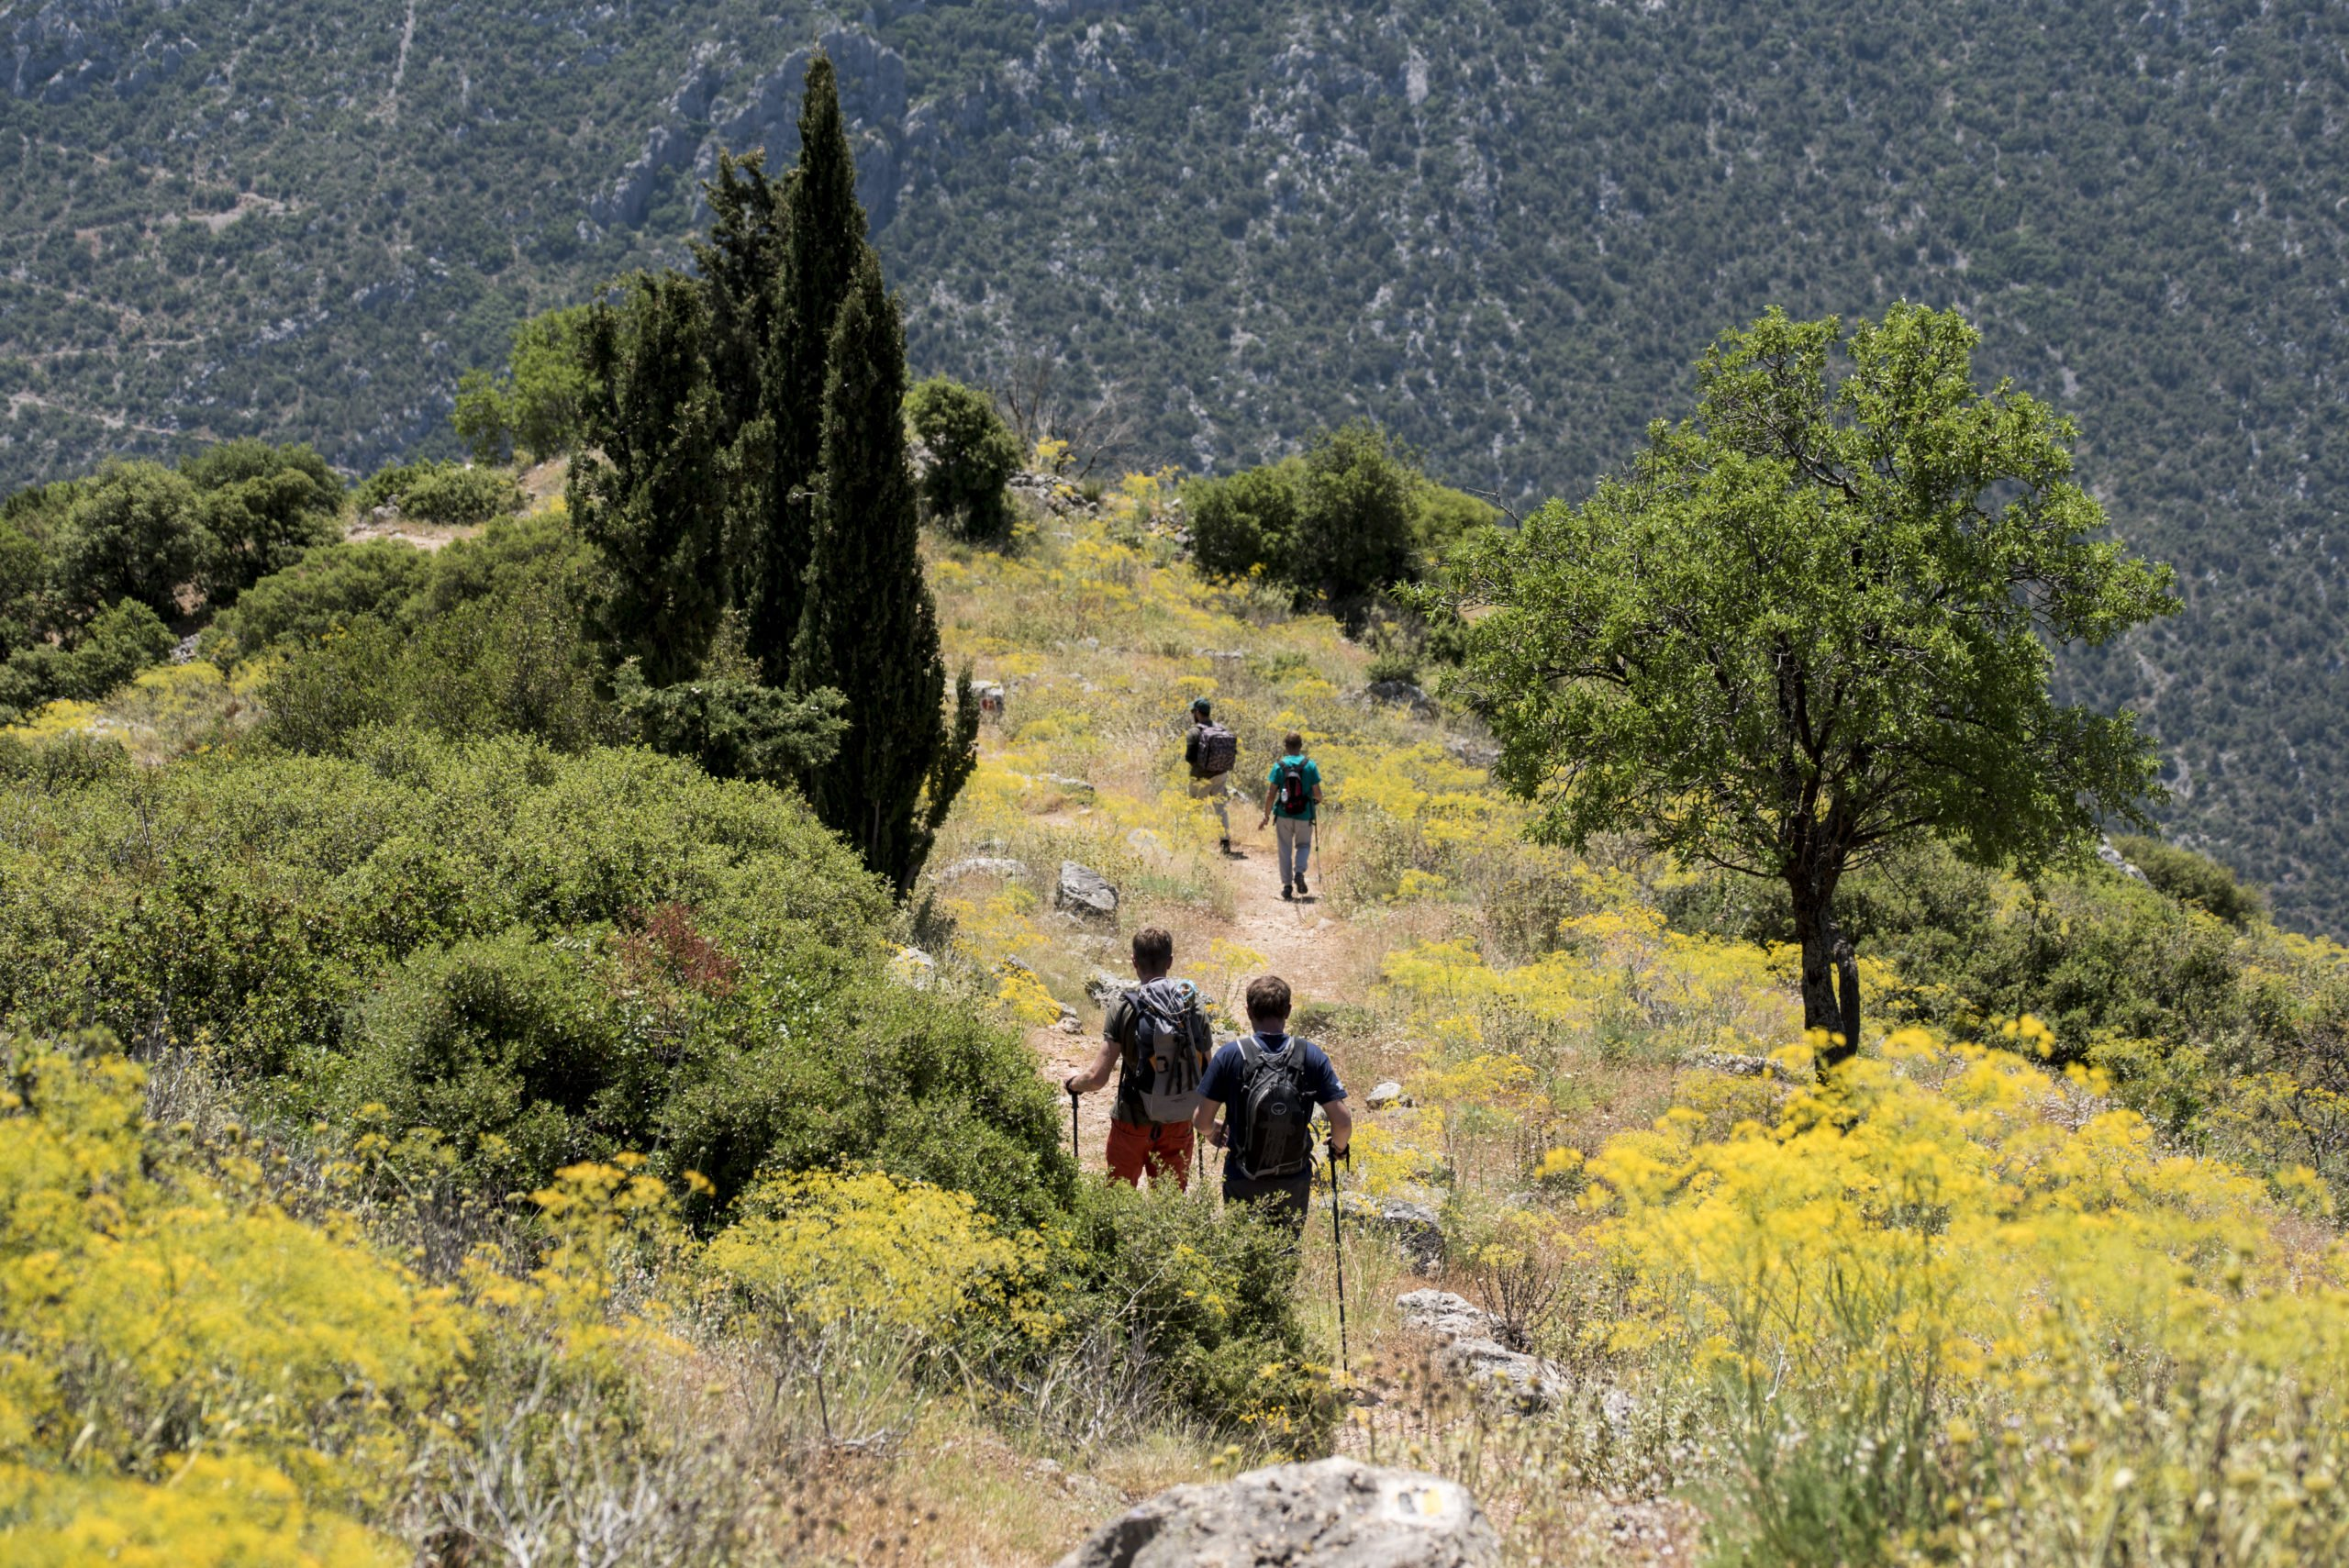 Hike Up To The Famous Ruins Of Delphi On The Delphi History And Hiking Tour From Athens_70